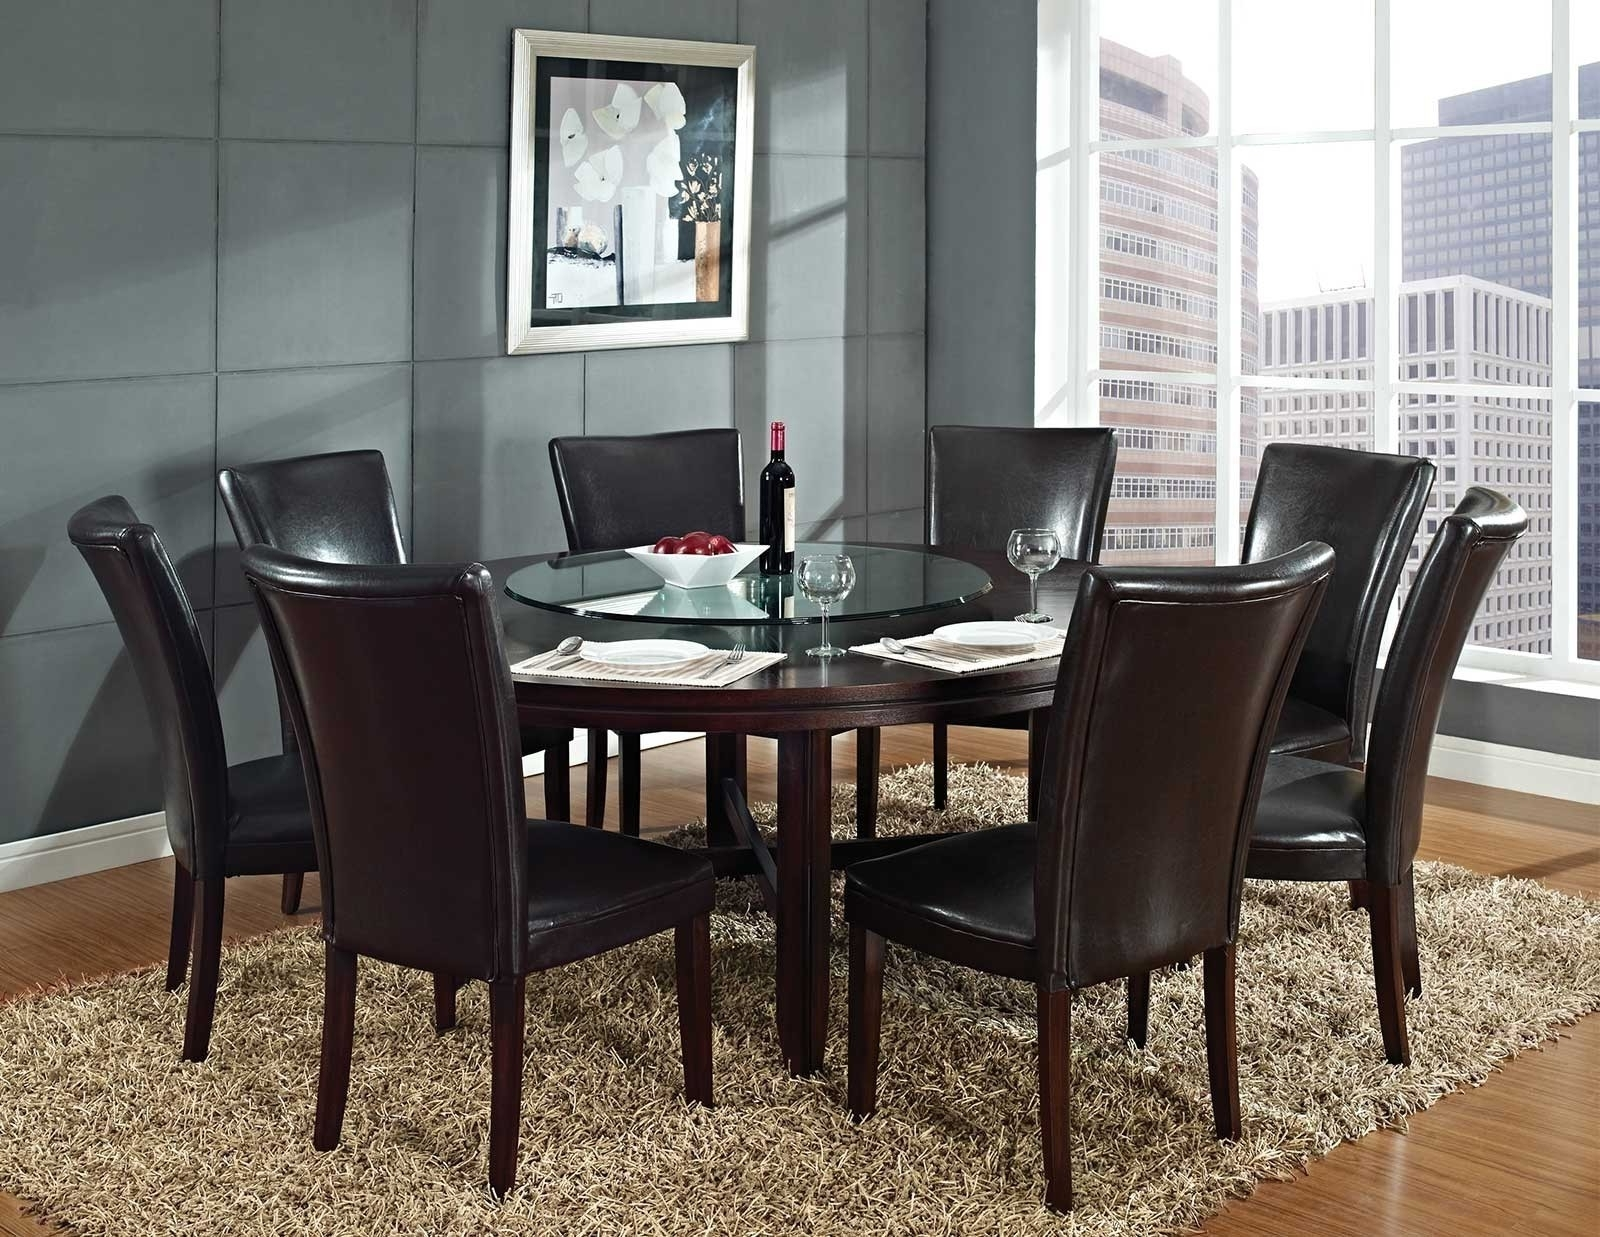 Most Recent Large Circular Dining Tables With Regard To Chairs Glass Glamorous Round For Set Circle Chair Dining Room And (View 20 of 25)